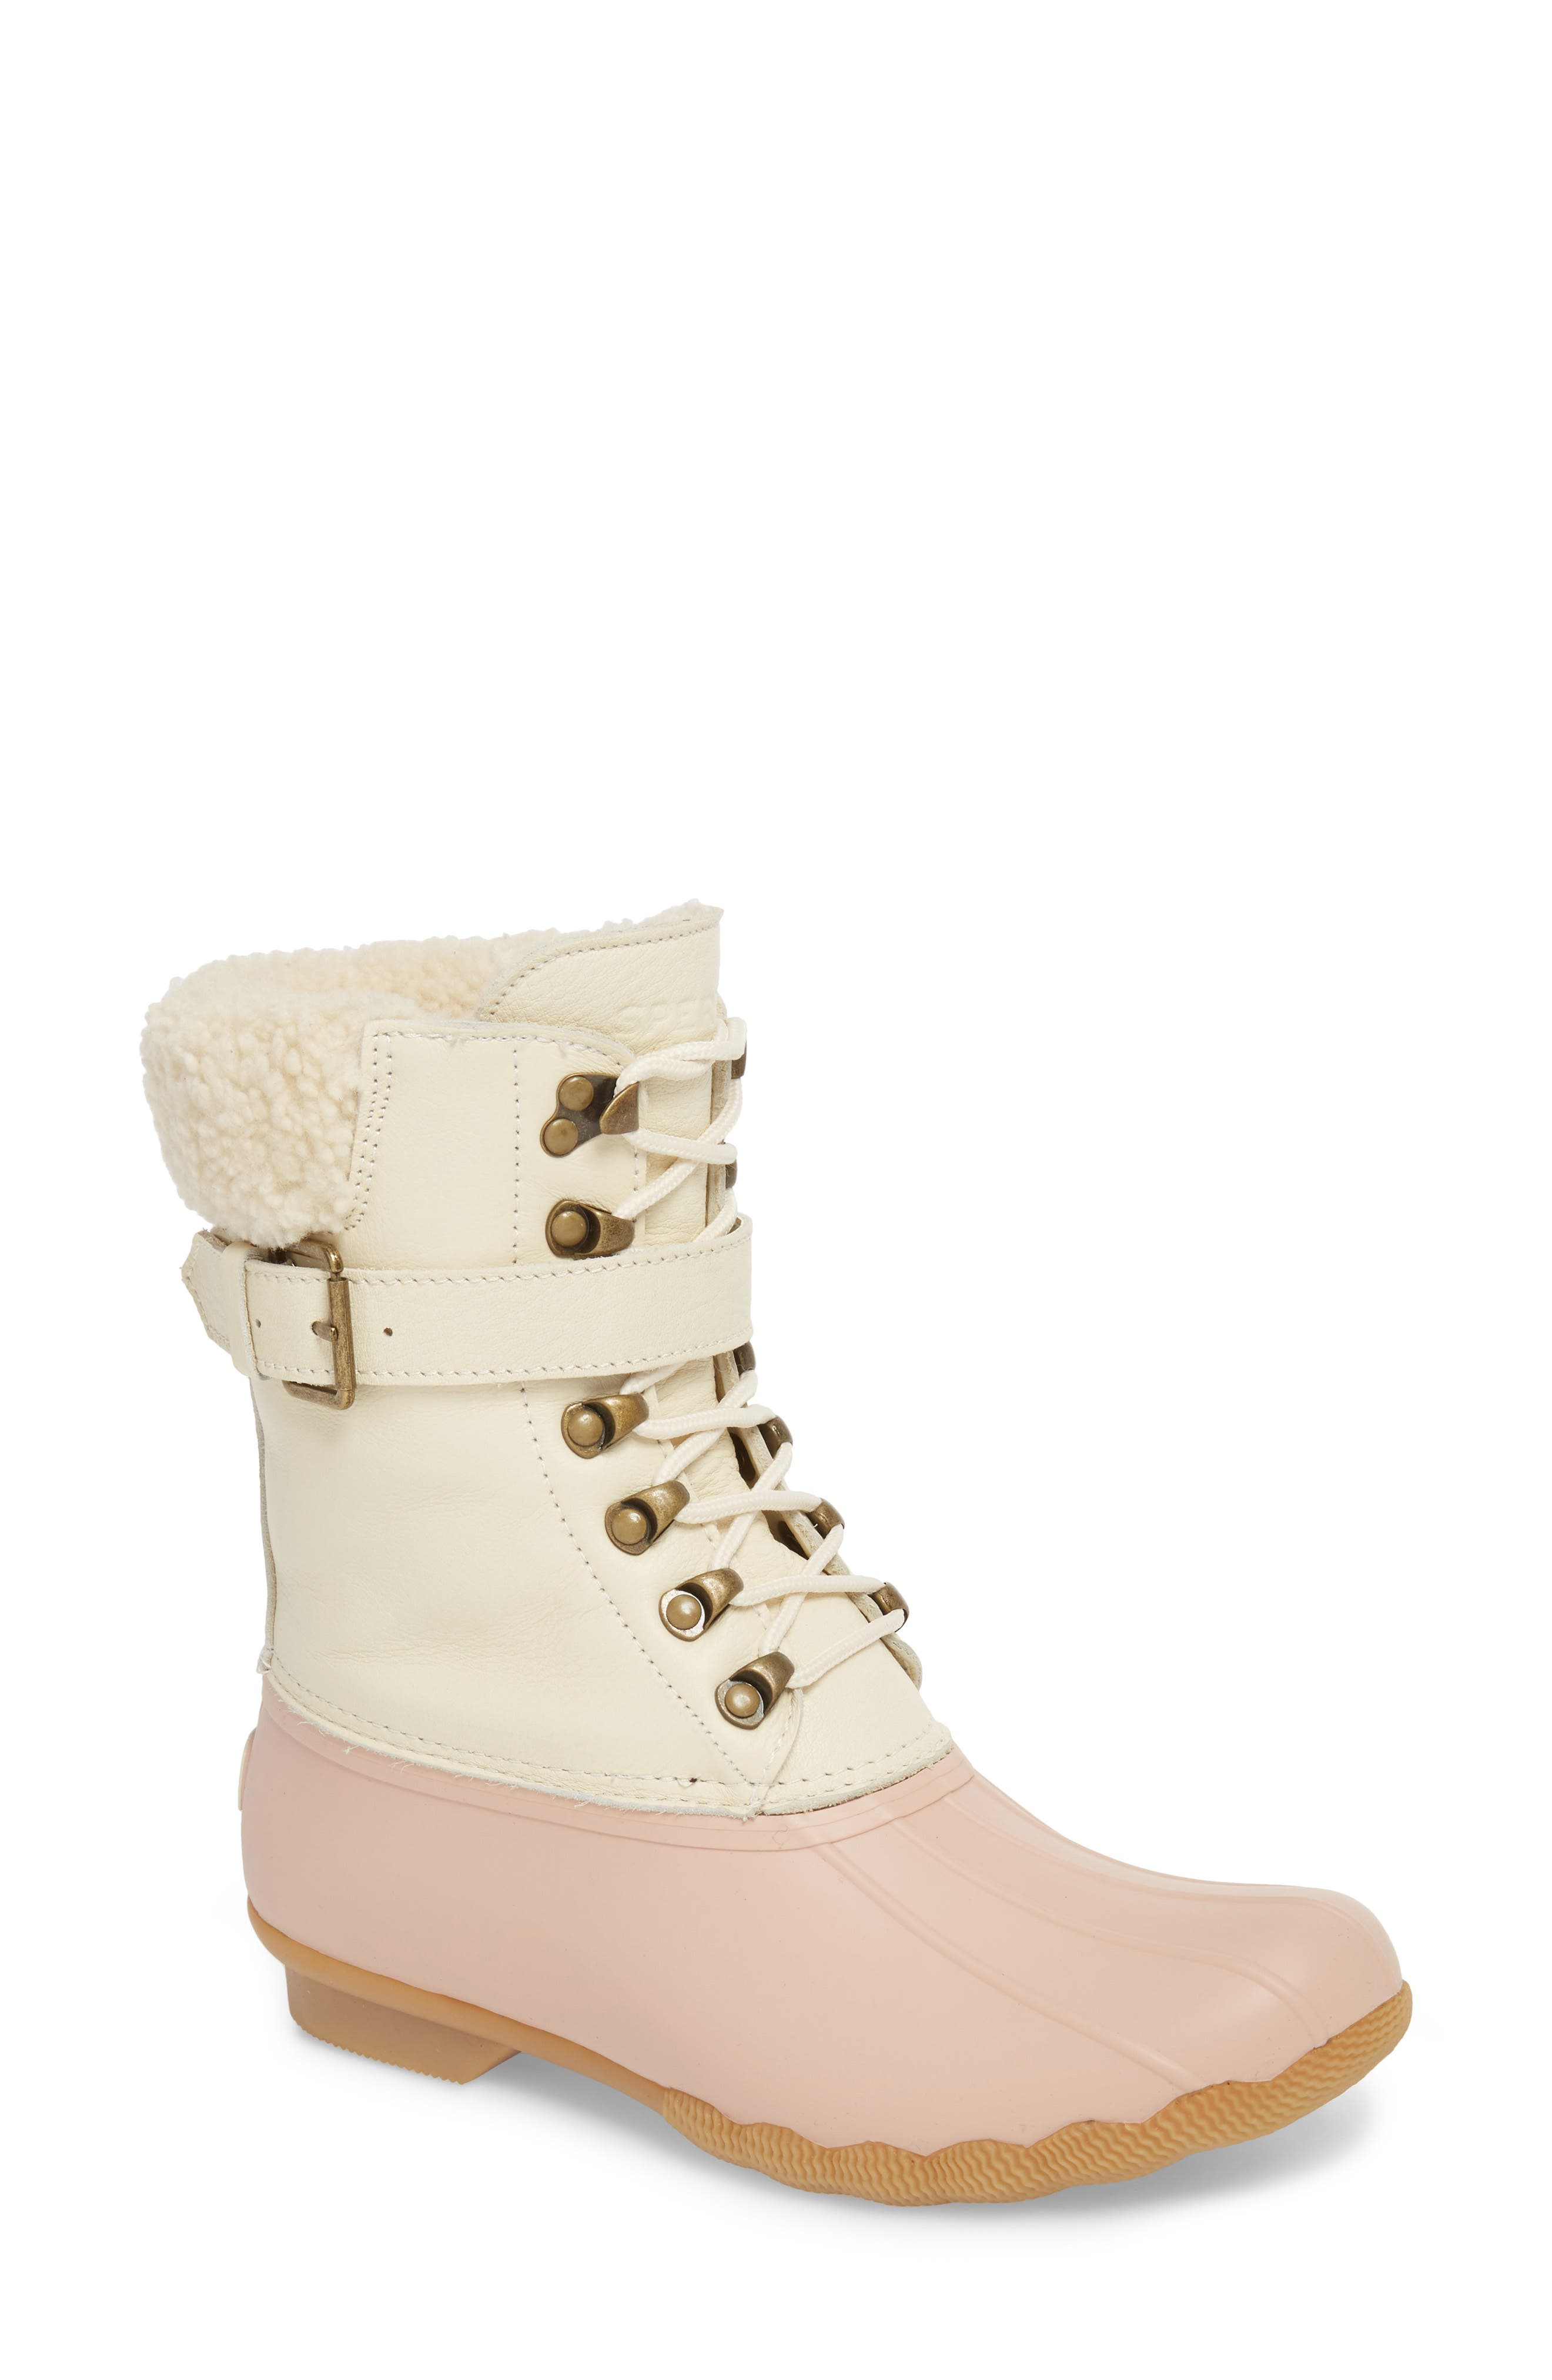 Shearwater Water-Resistant Genuine Shearling Lined Boot,                             Main thumbnail 4, color,